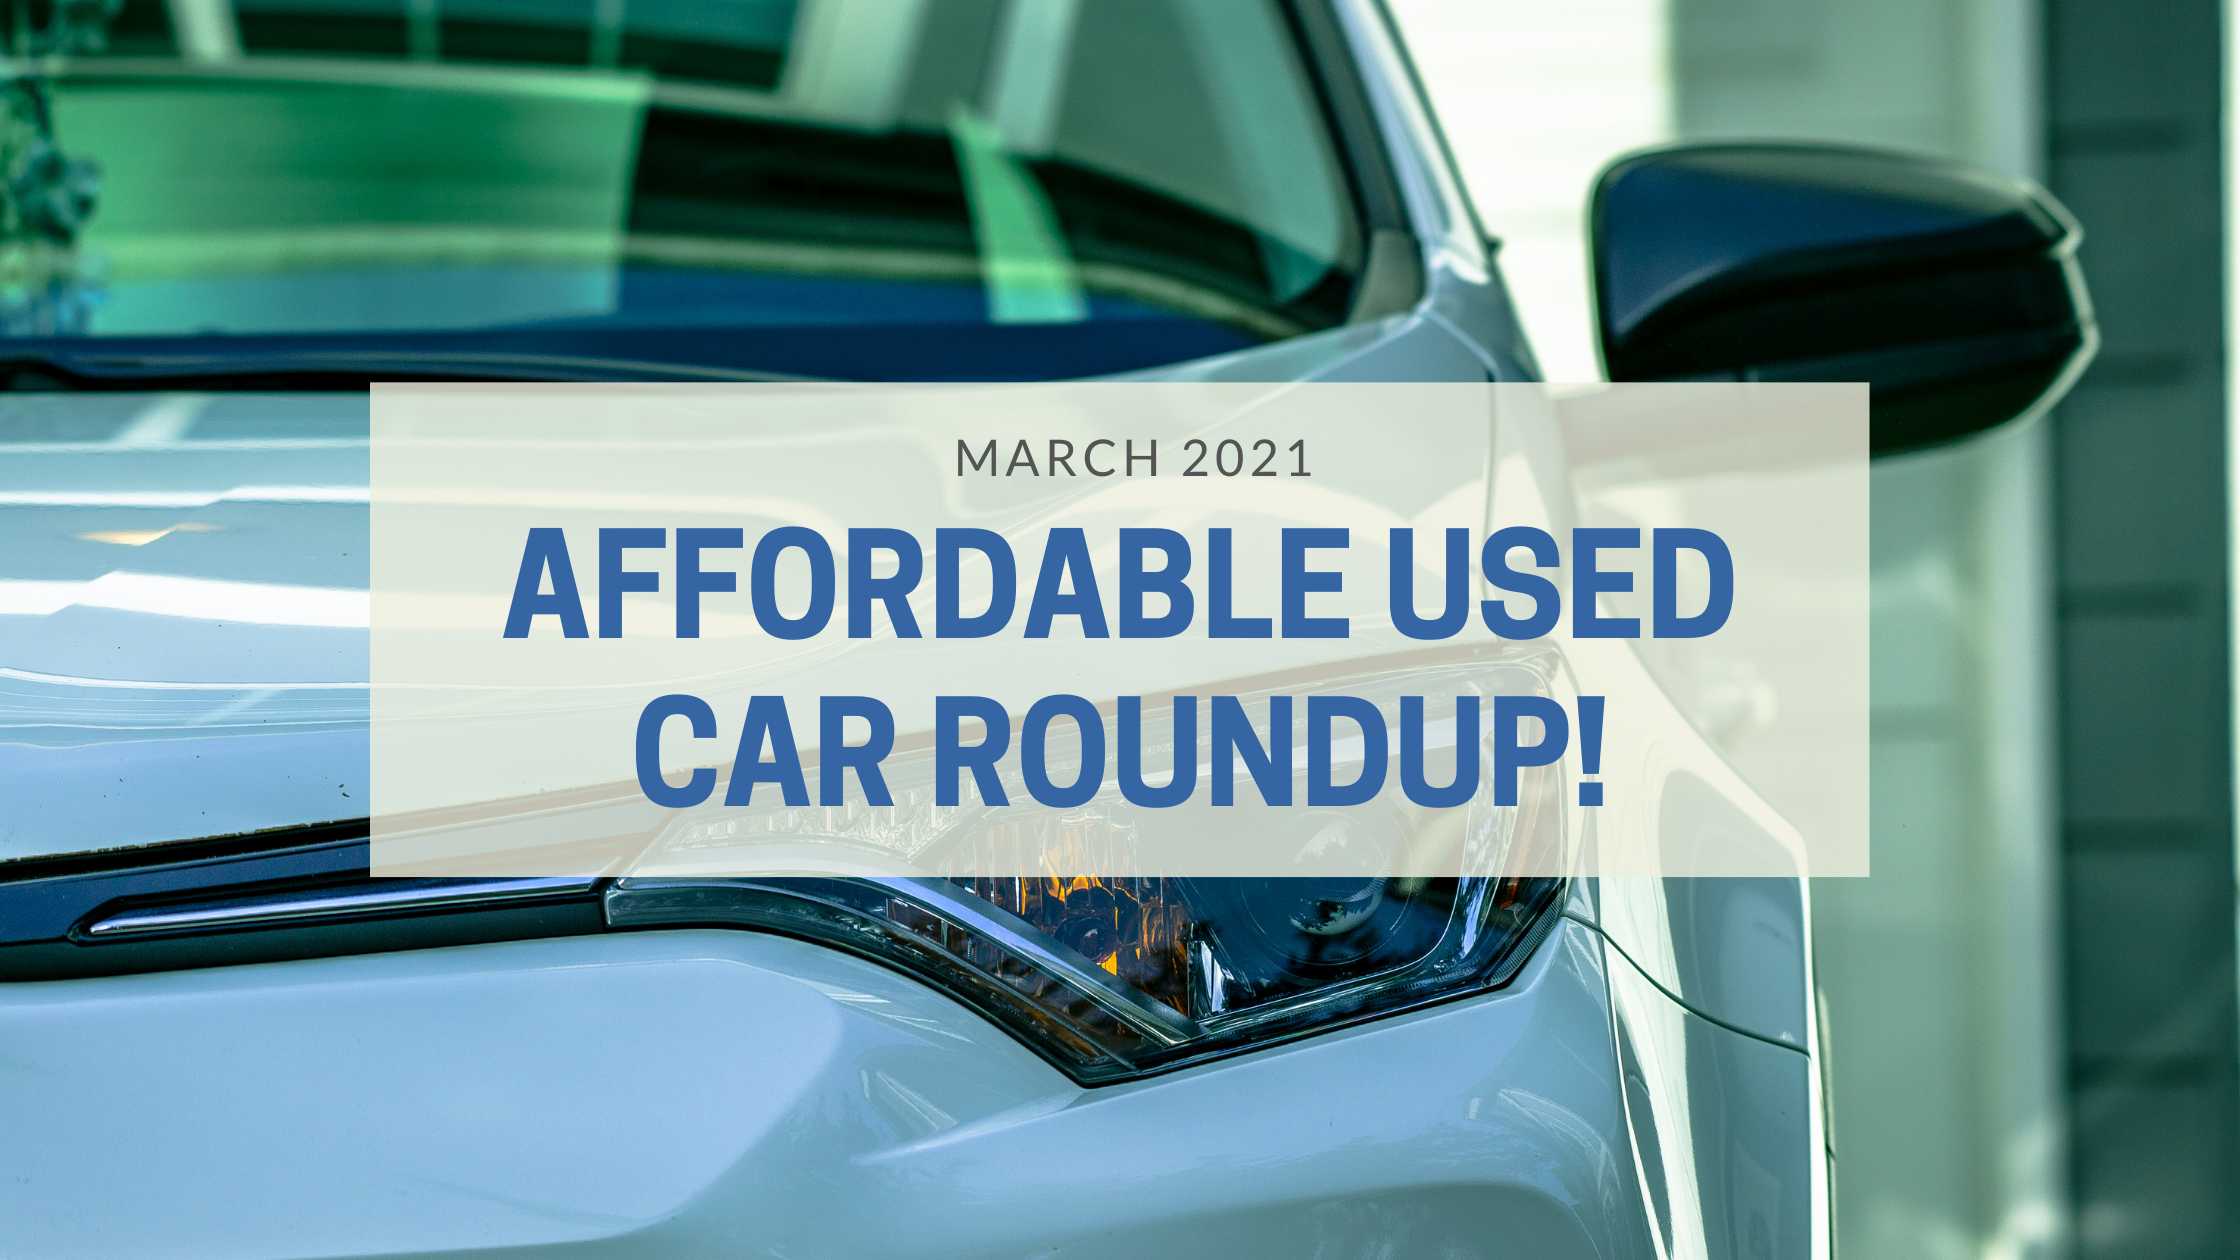 Affordable Used Car Roundup!